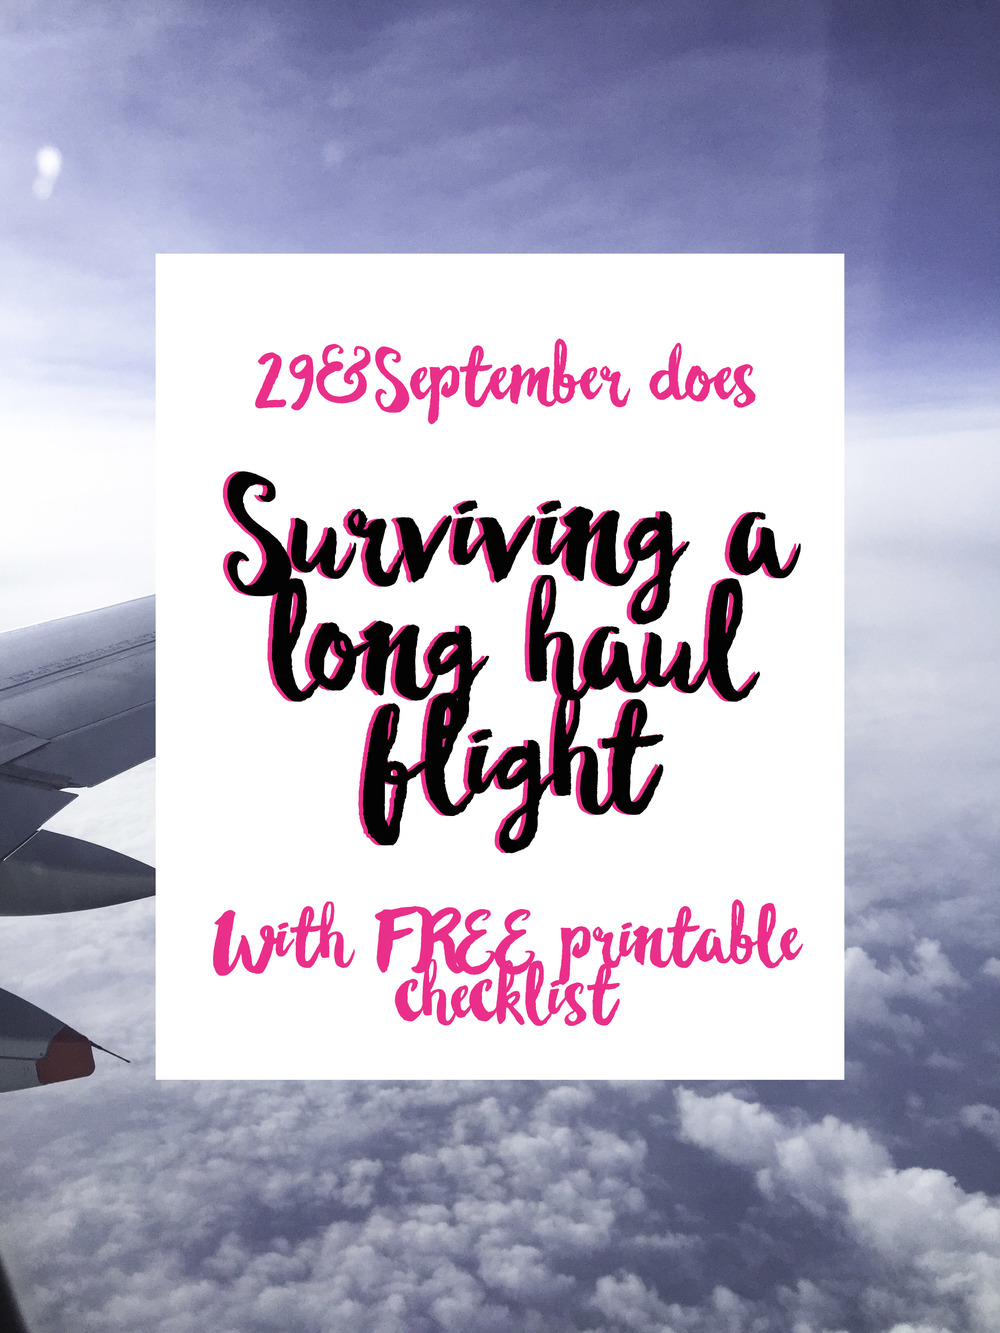 How to survive a long haul flight, 29&September